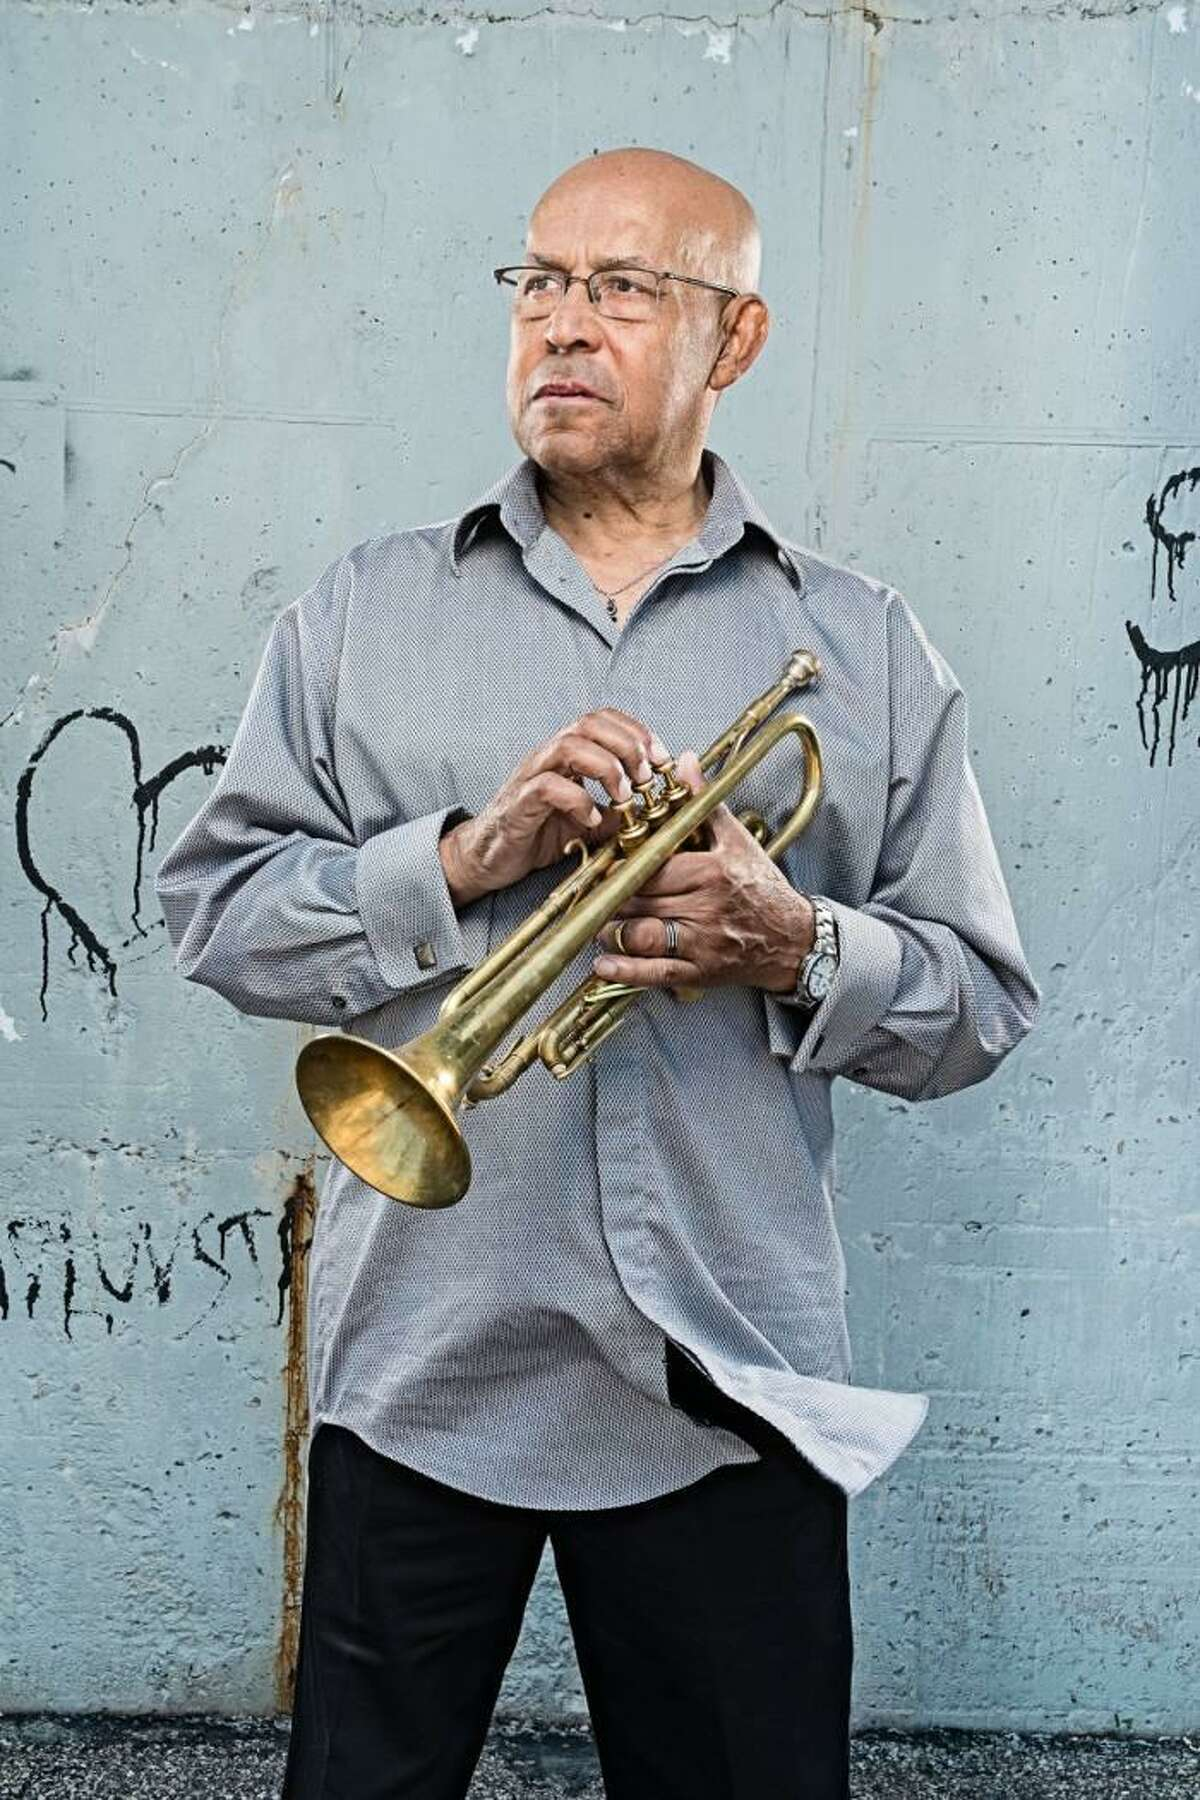 The Dr. Eddie Henderson Quartet will kick off Jazz Week New Haven on Friday night at Lyric Hall in Downtown New Haven. Click here for more details.